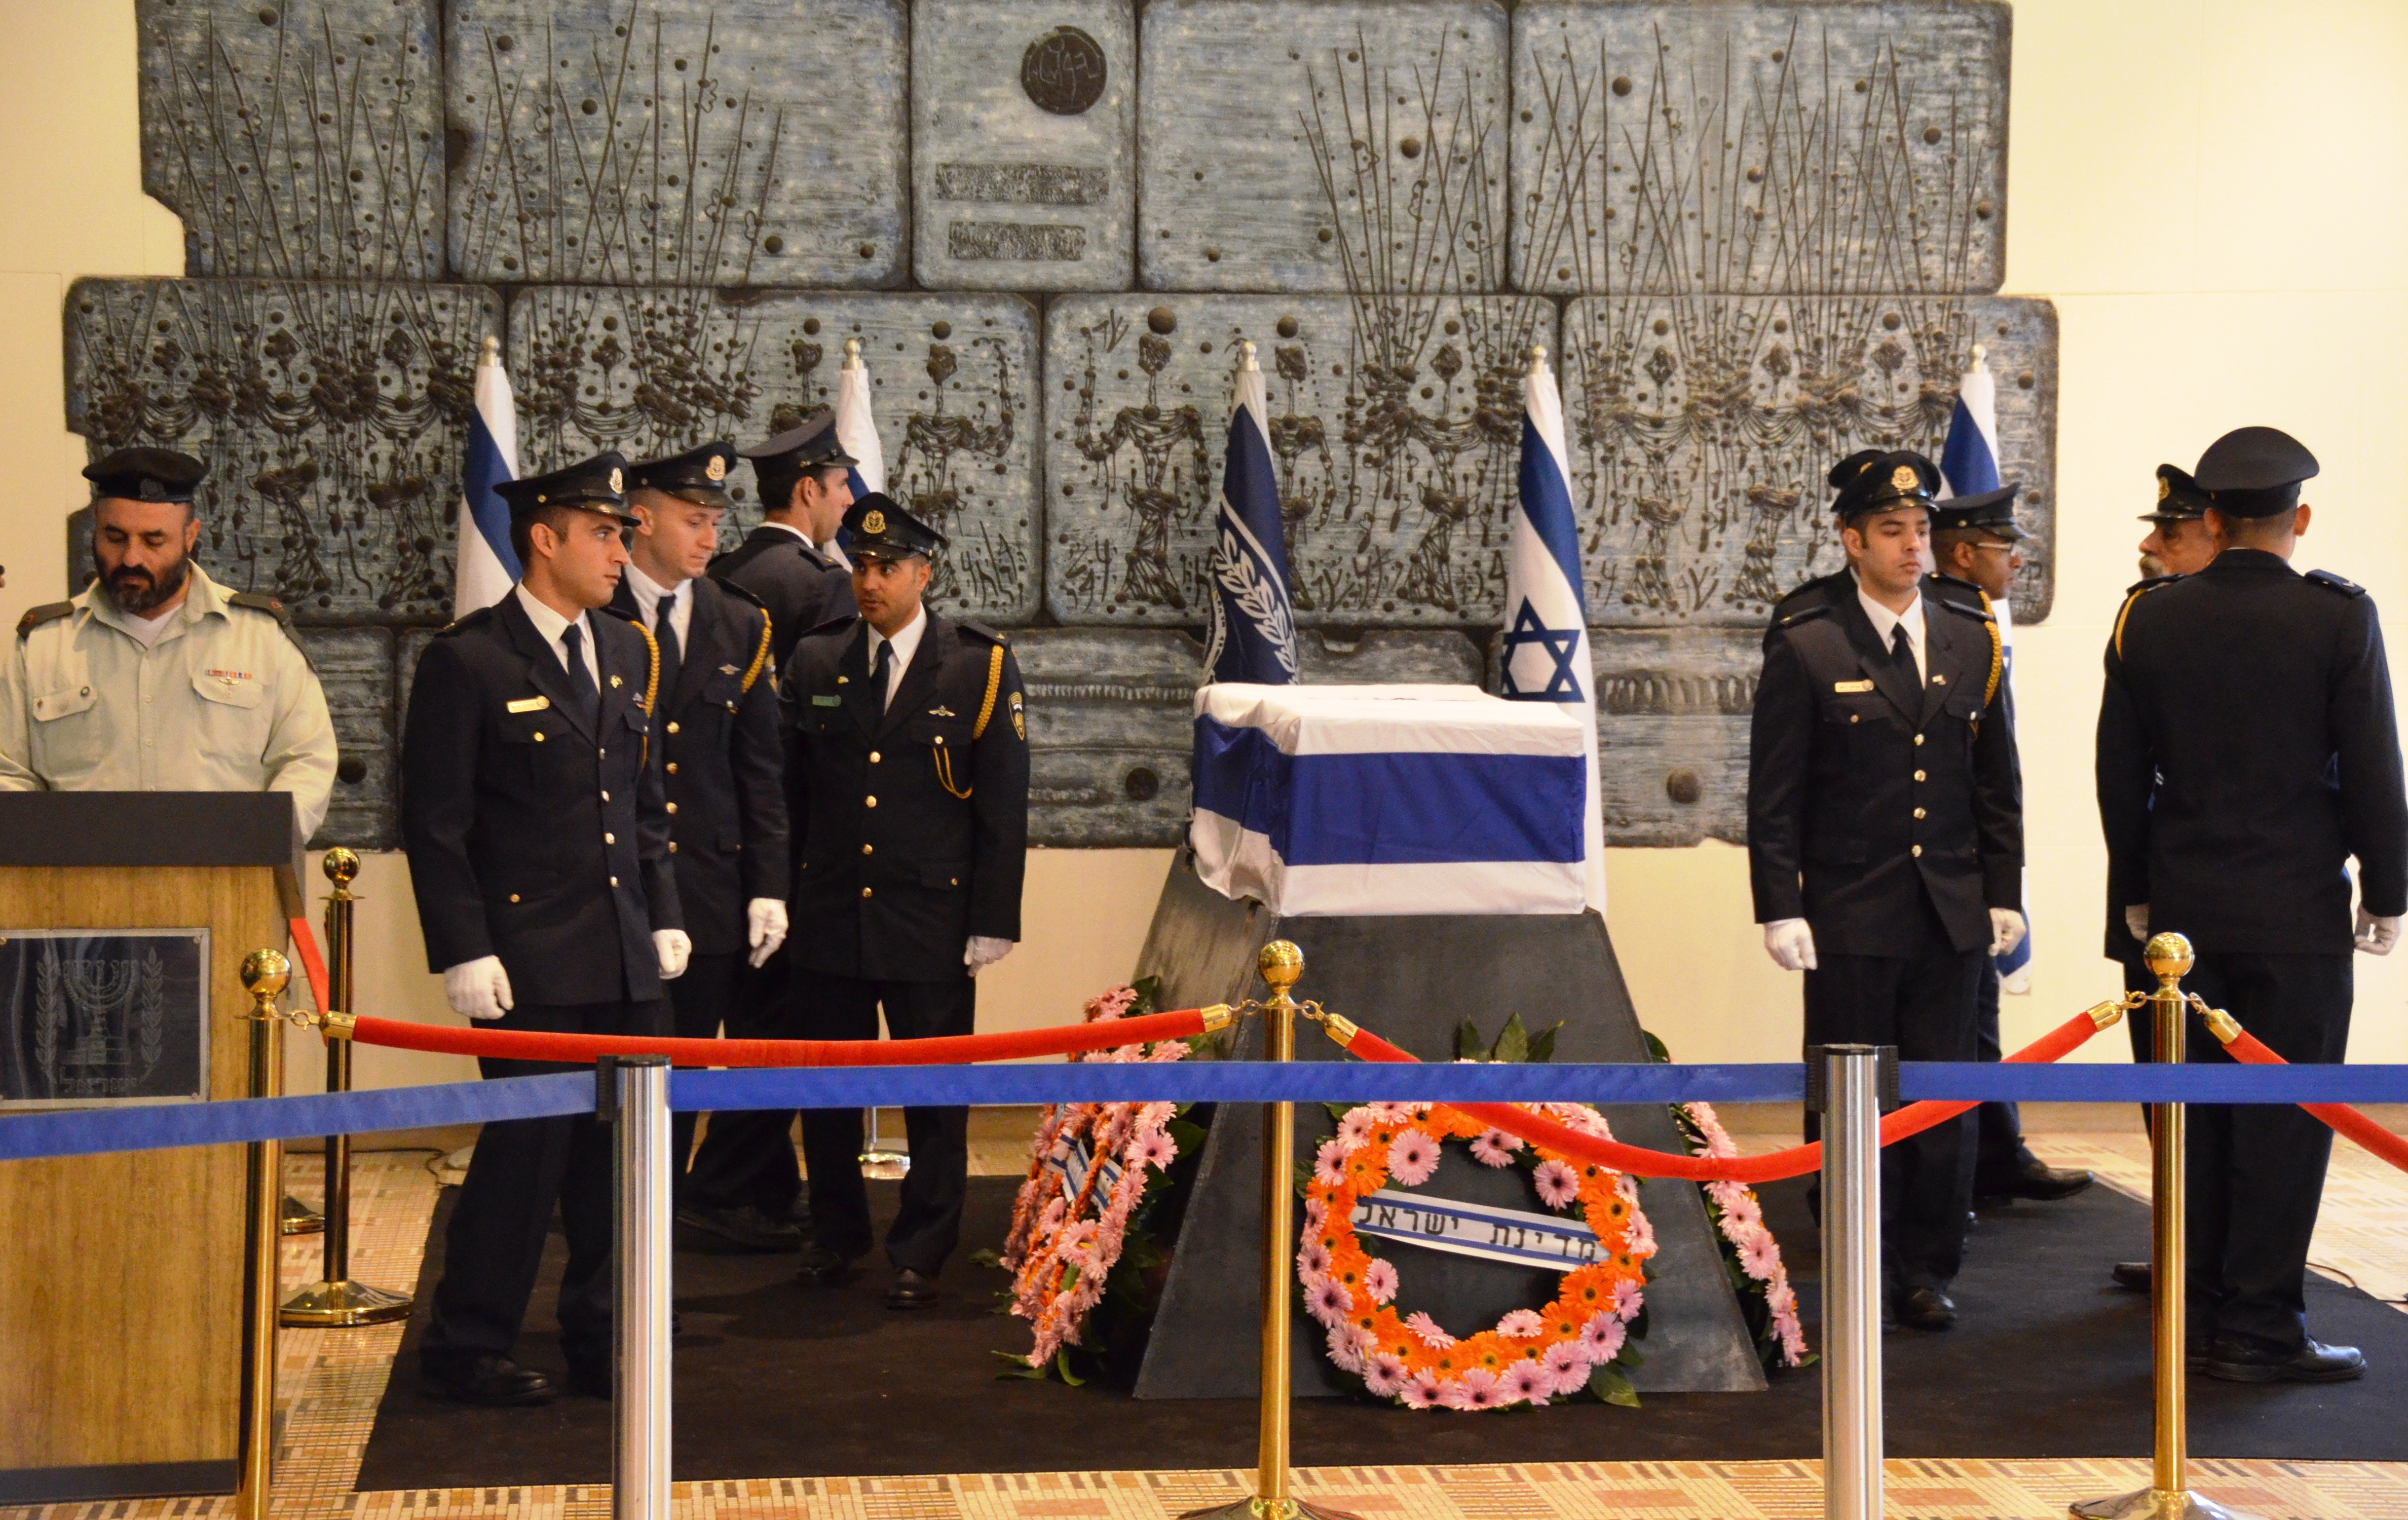 funeral at Israel president house